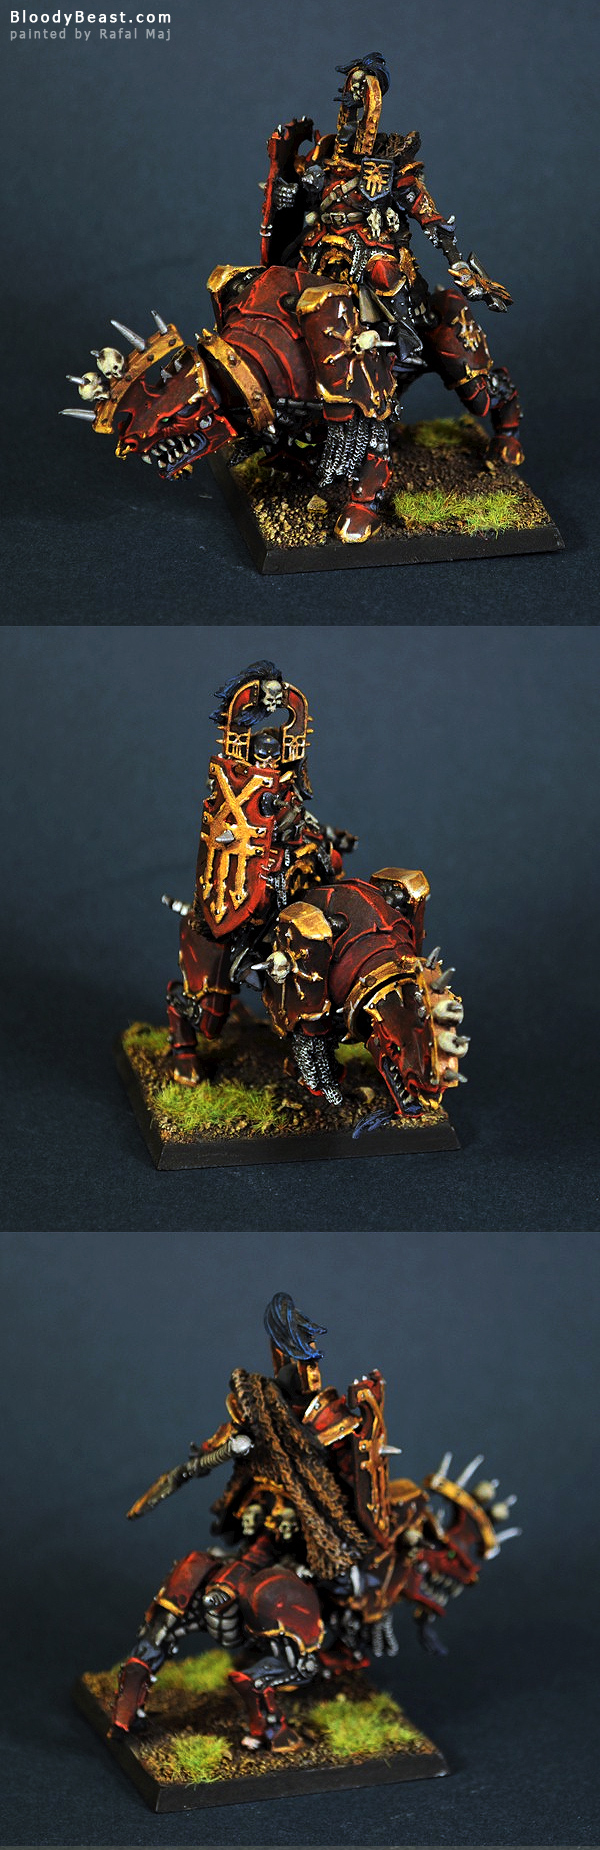 Chaos Khorne Lord on Juggernaut painted by Rafal Maj (BloodyBeast.com)